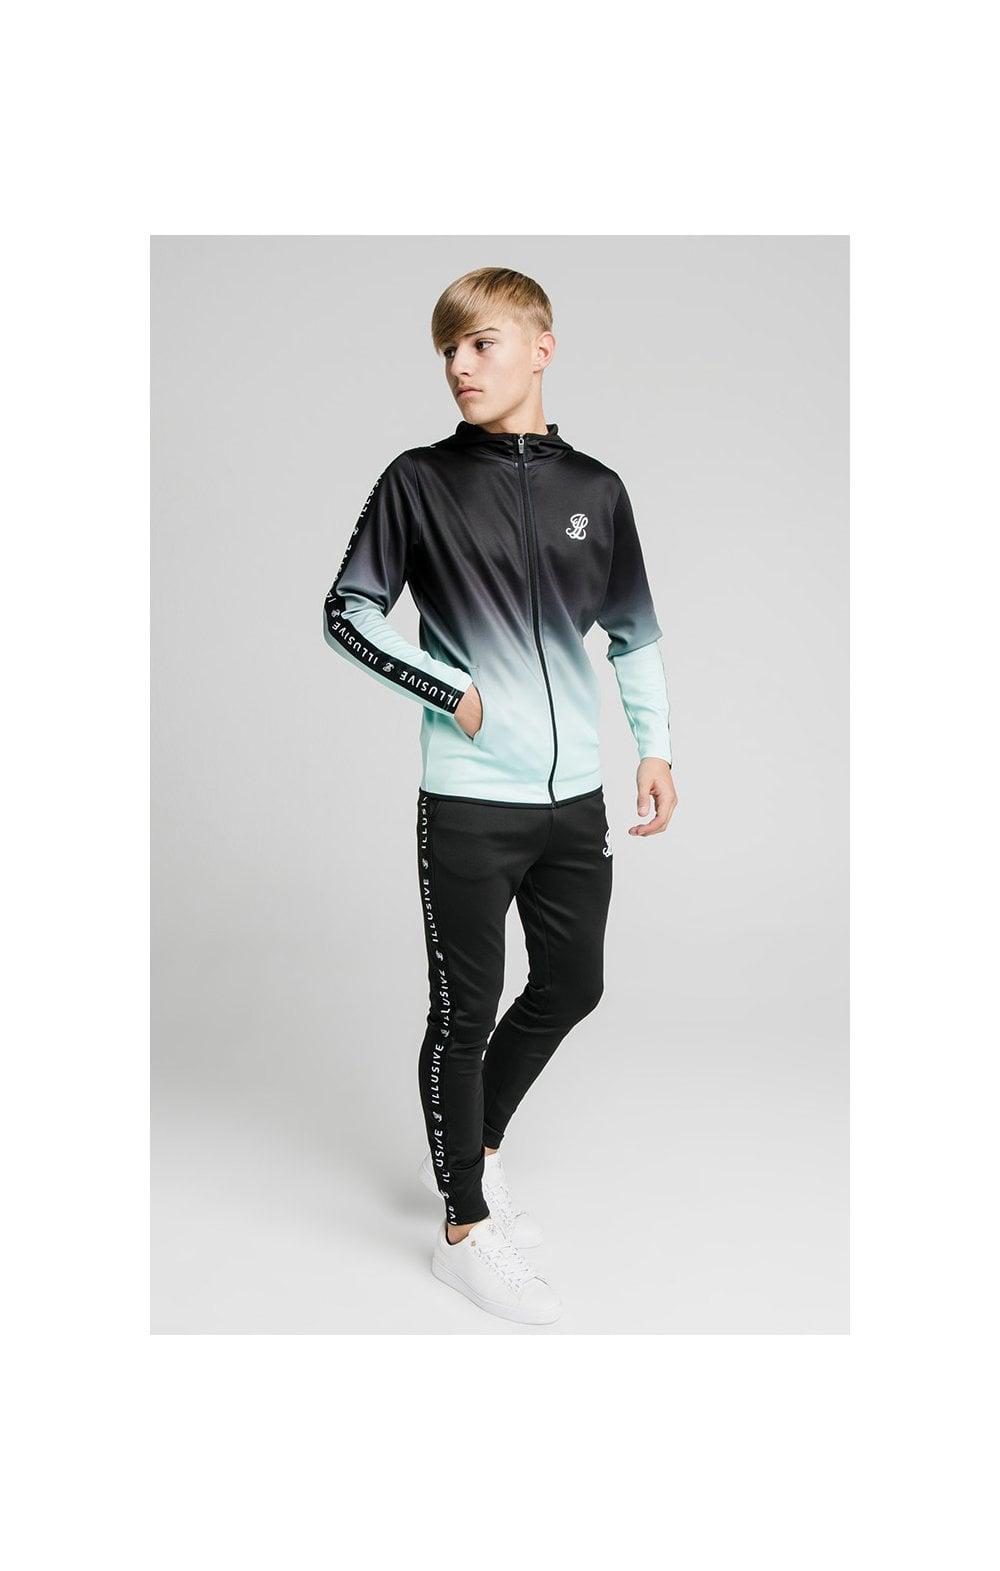 Load image into Gallery viewer, Illusive London Fade Scope Zip Through Hoodie - Black & Mint (3)